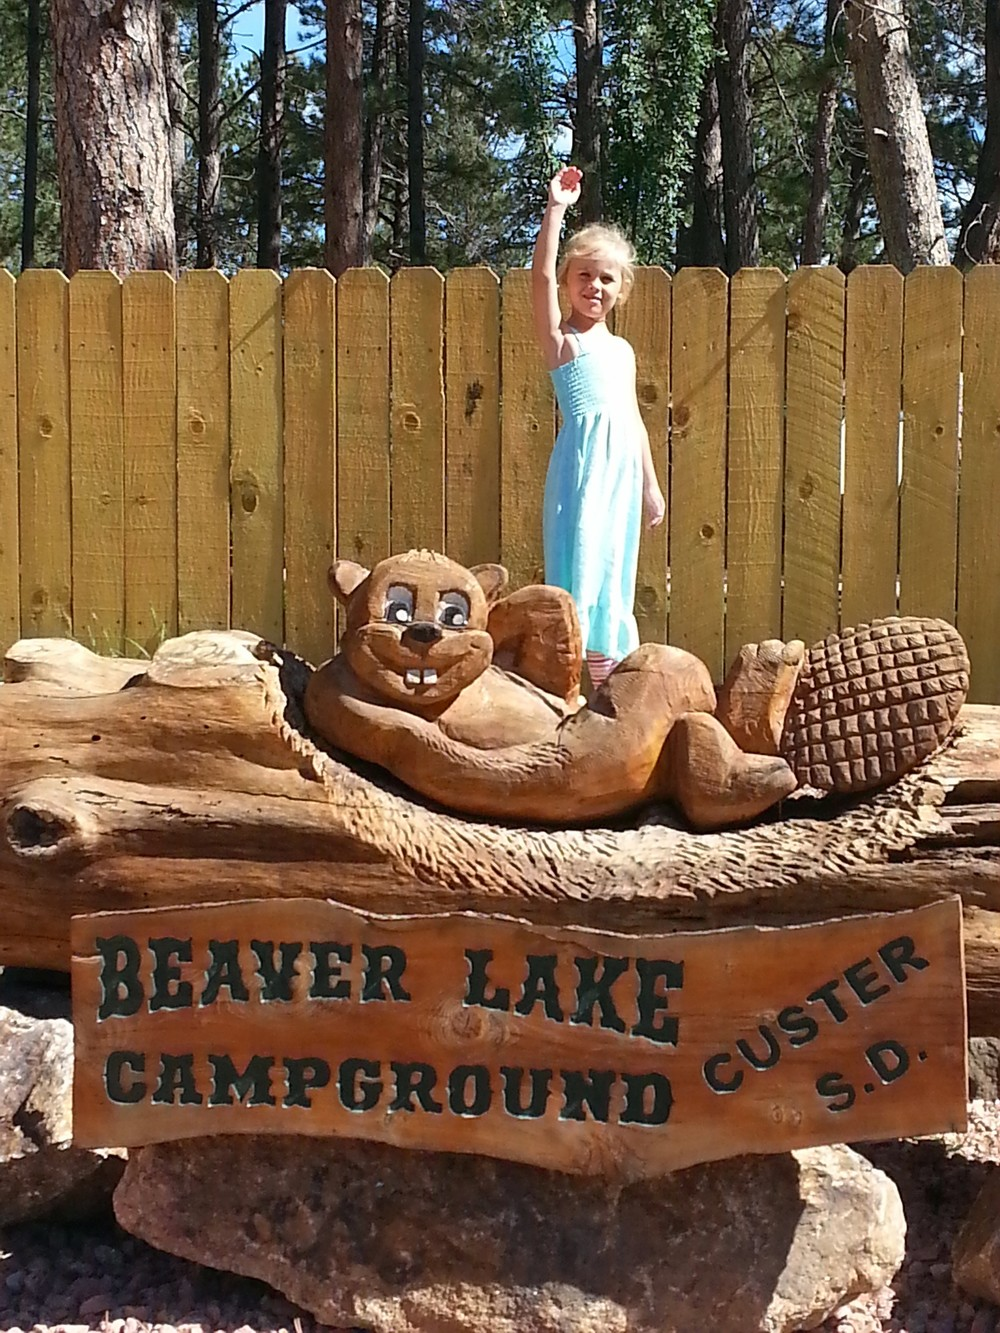 Beaver Lake Campground, Custer, SD: one of our favorites.